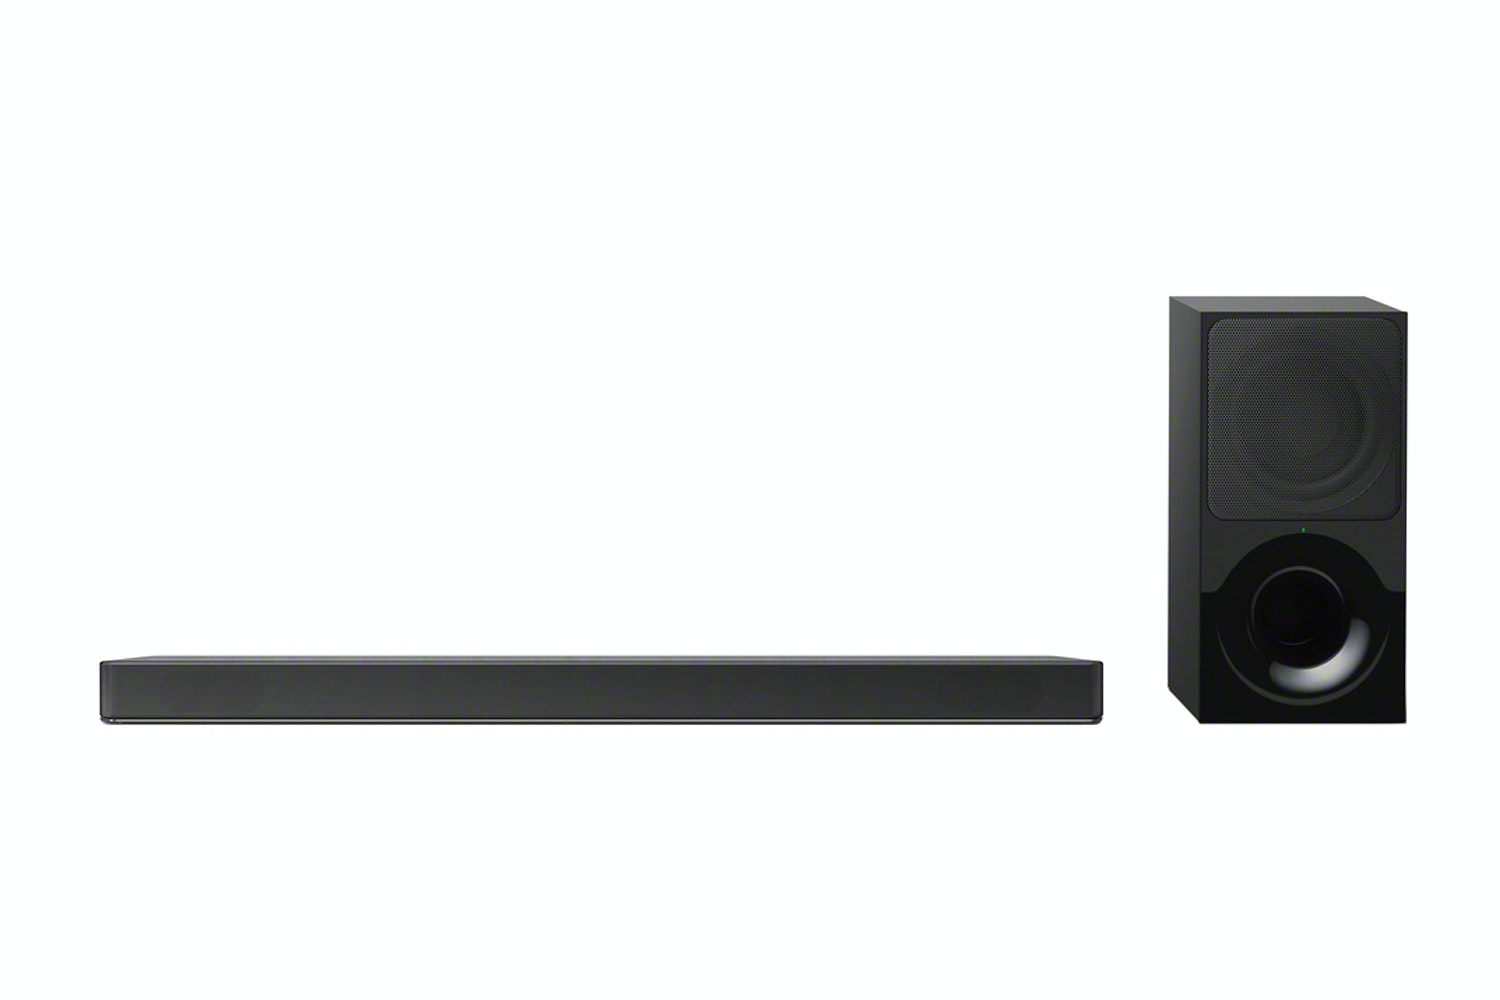 Sony HT-XF9000 2.1ch Dolby Atmos/DTS:X Soundbar with Vertical Surround Engine and Subwoofer